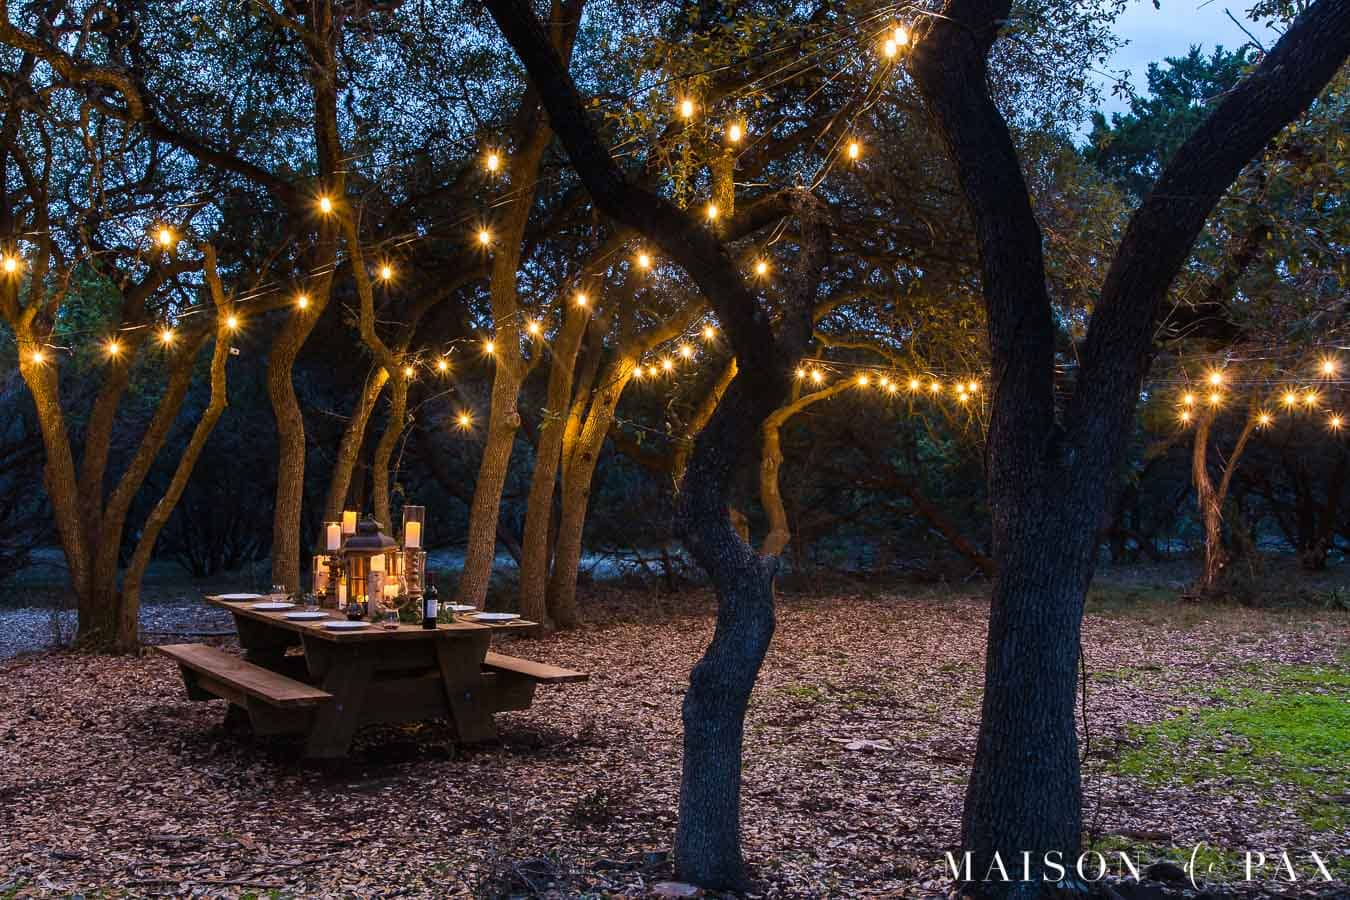 globe lights strung over outdoor patio area | maison de pax